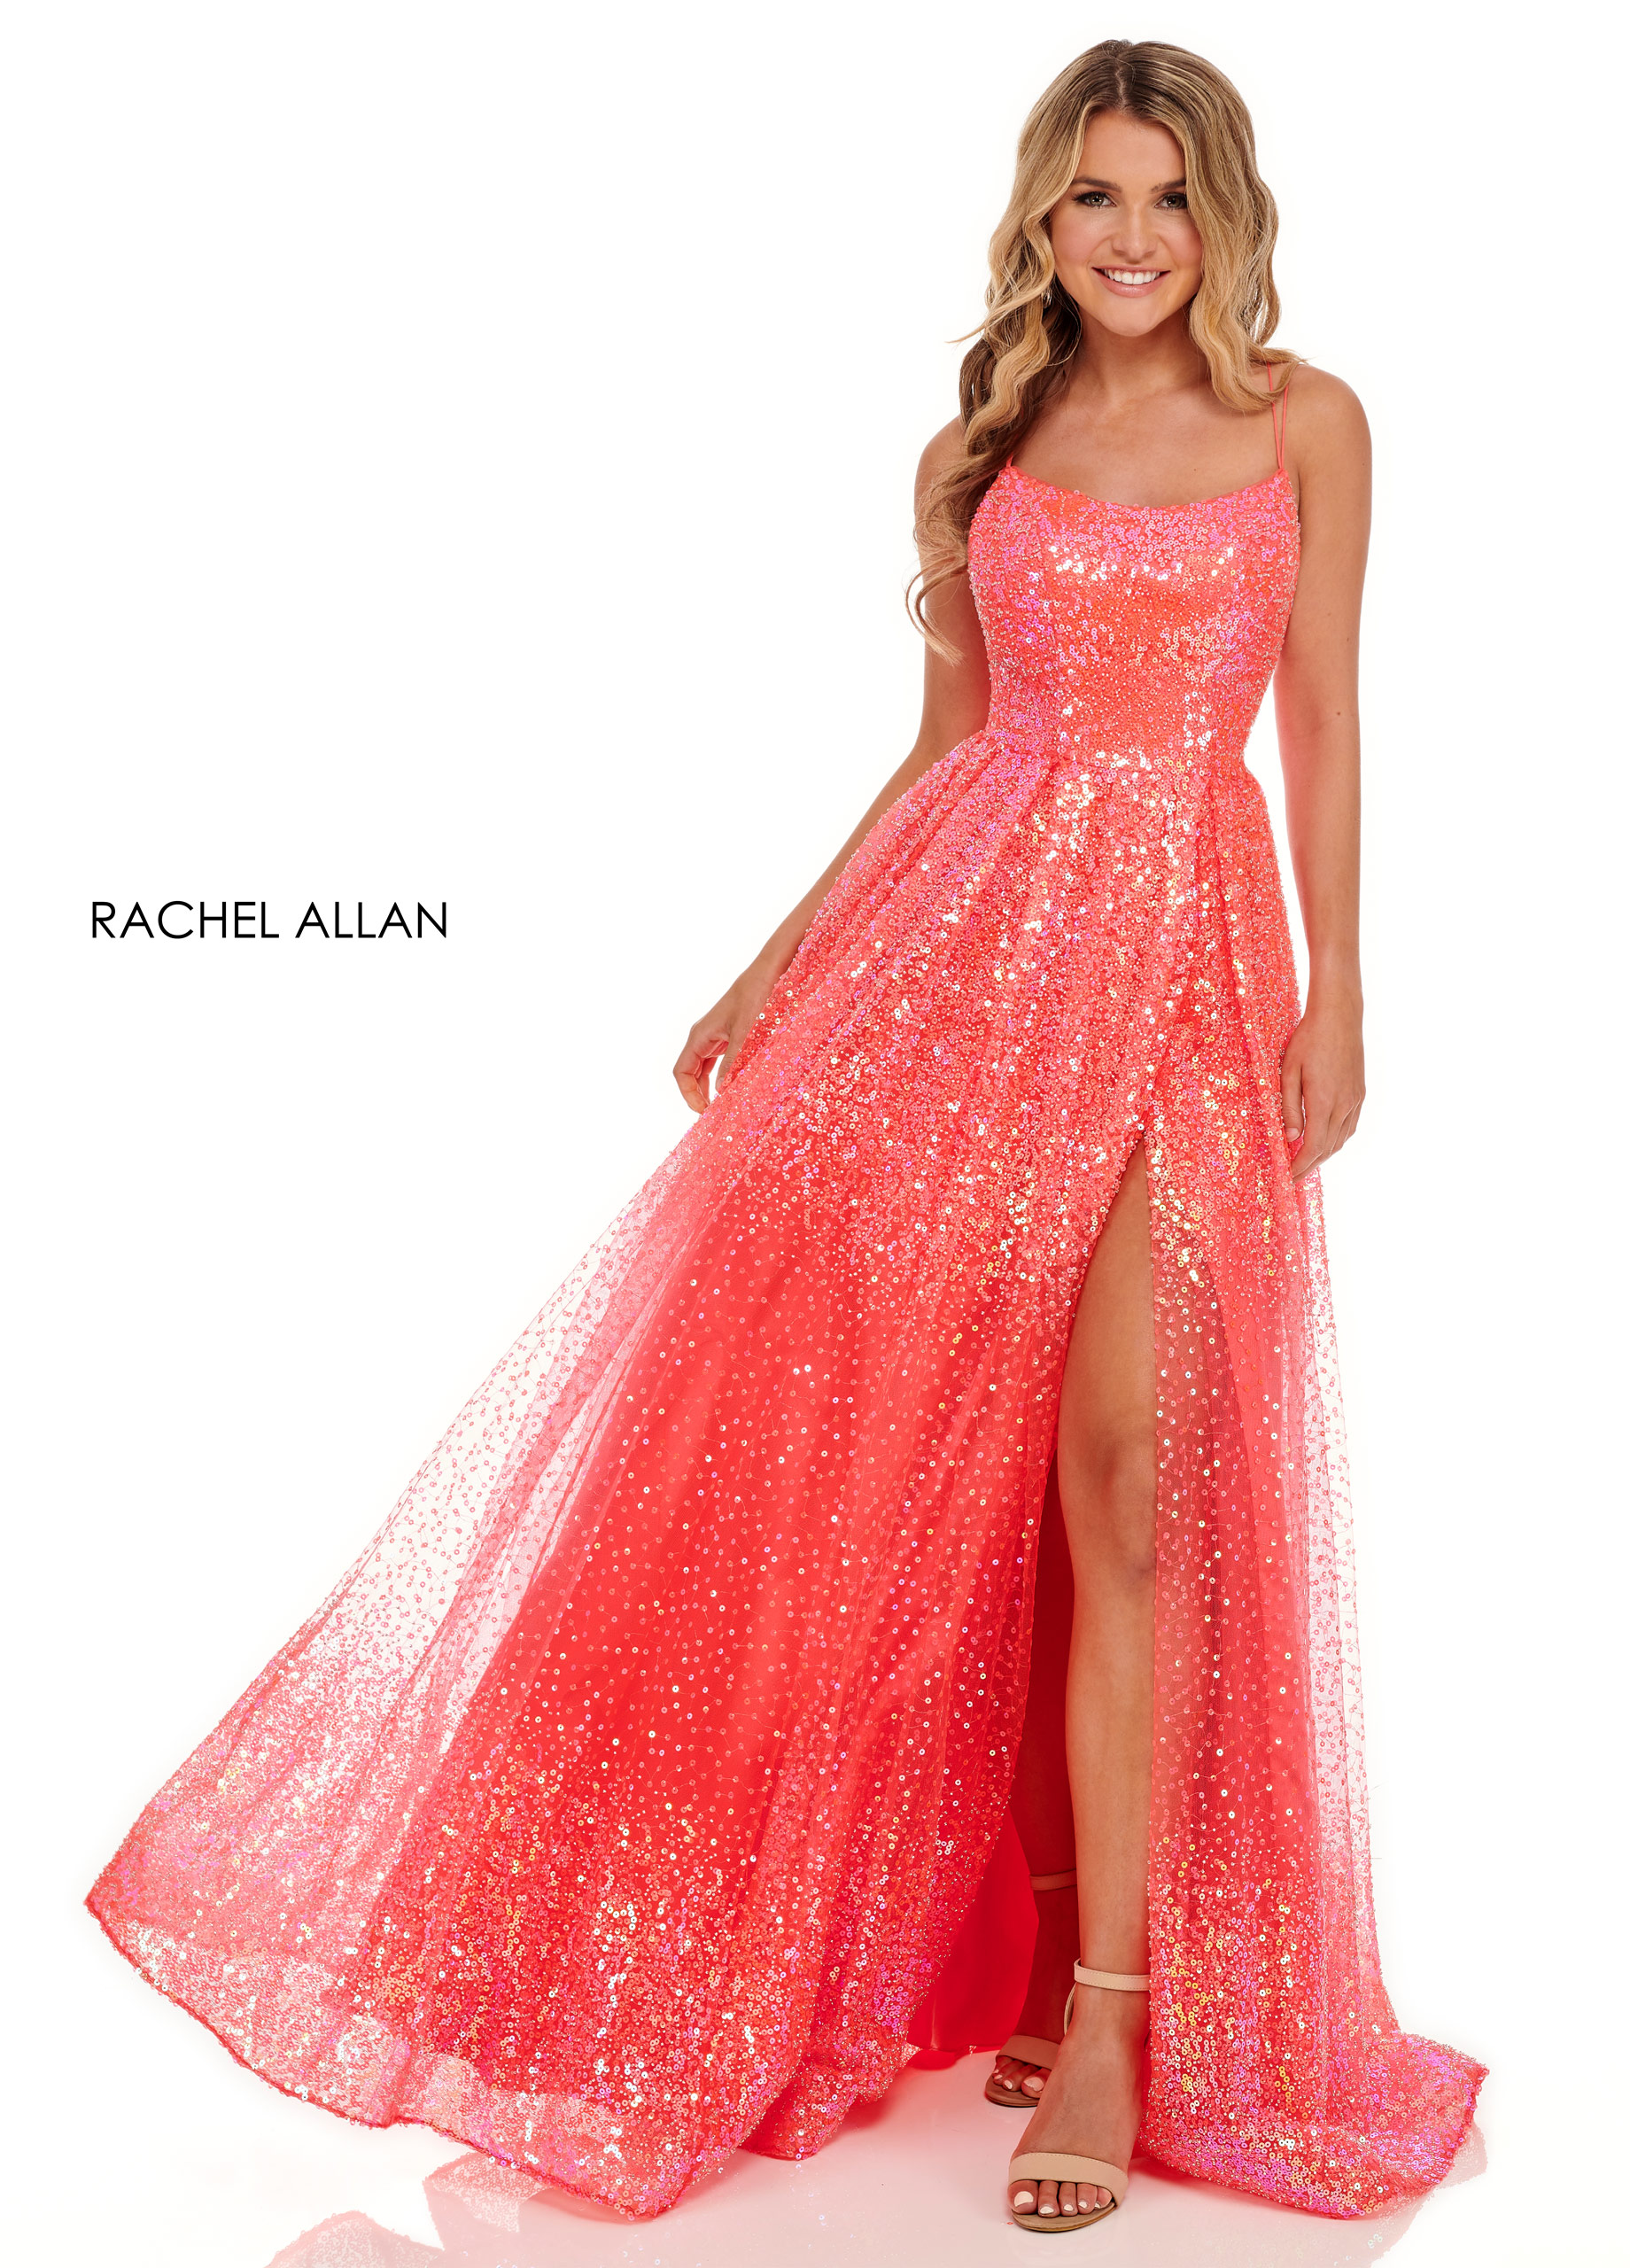 Scoop Neck Ball Gowns BEST SELLERS in Coral Color